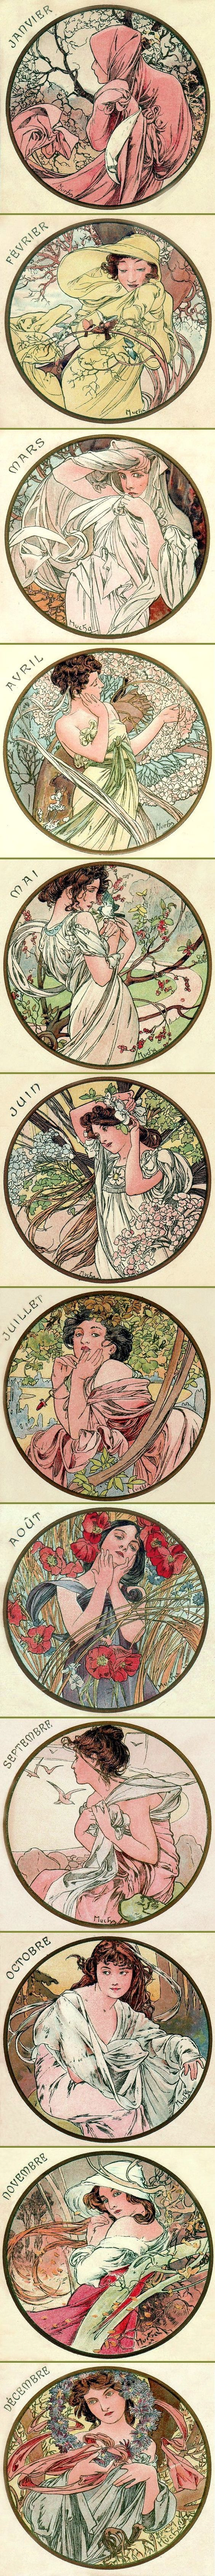 Alphonse Mucha - The Months (1899):